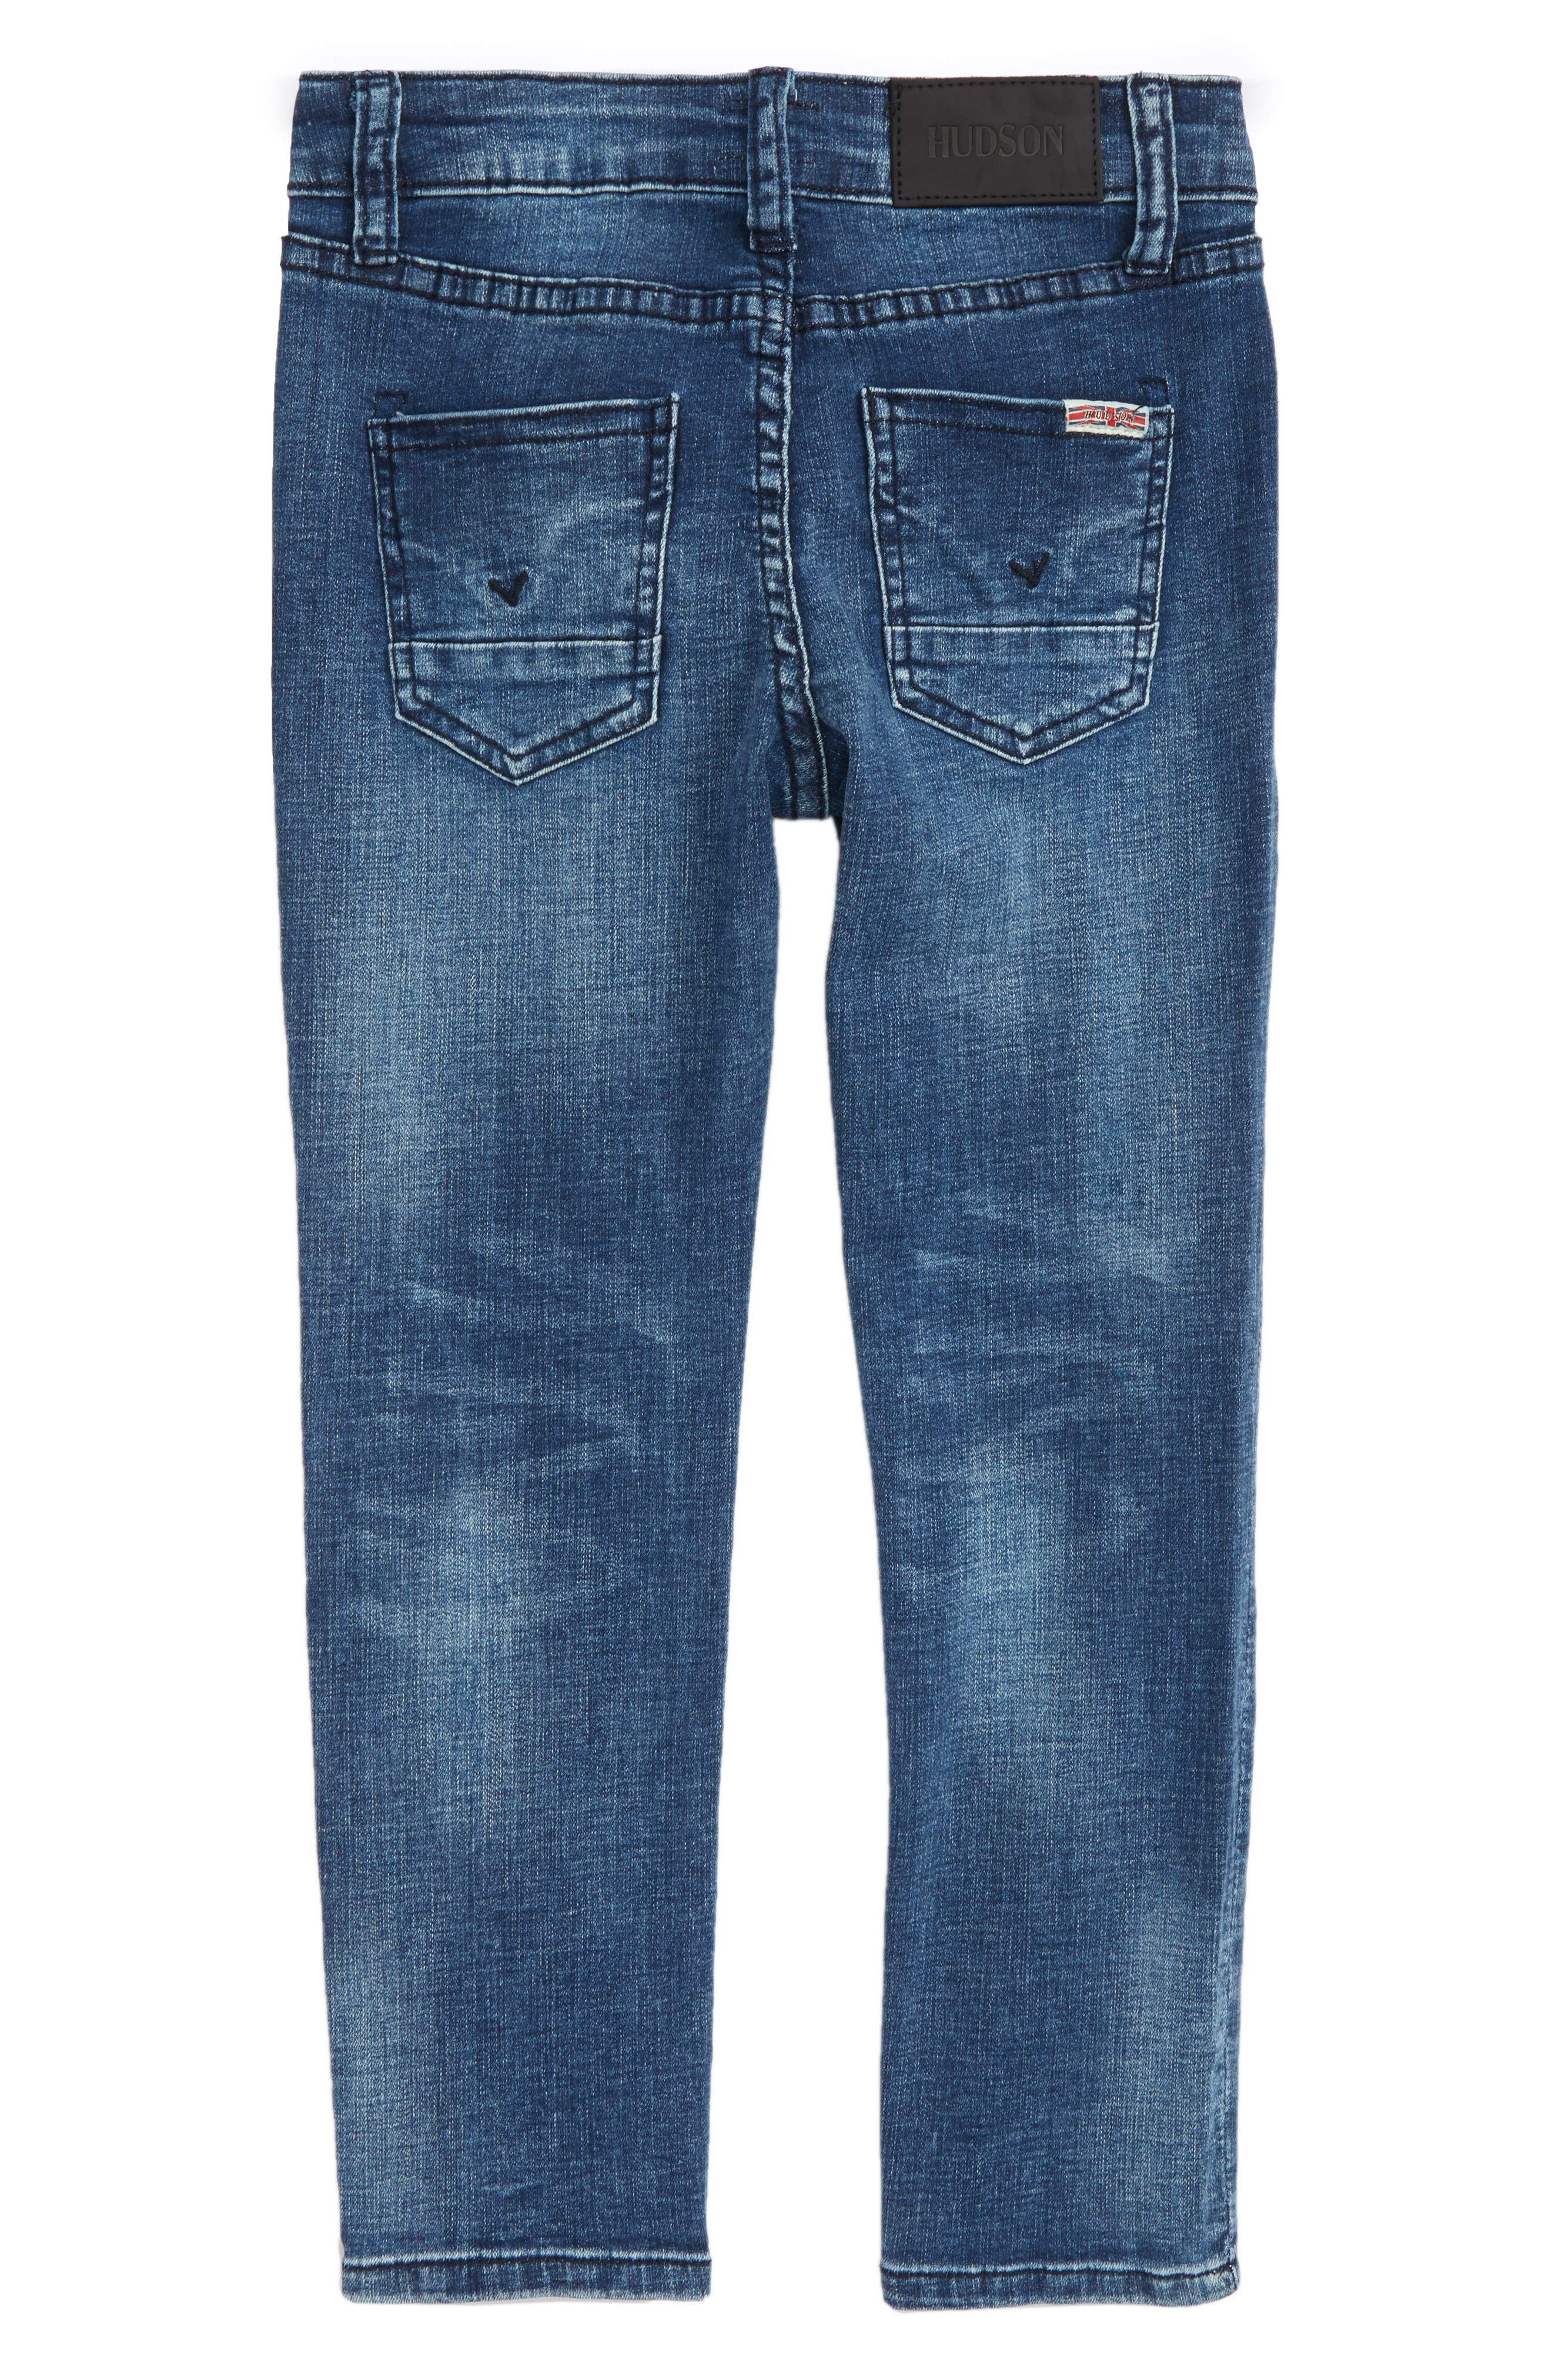 Jagger Slim Fit Straight Leg Jeans,                             Alternate thumbnail 2, color,                             468